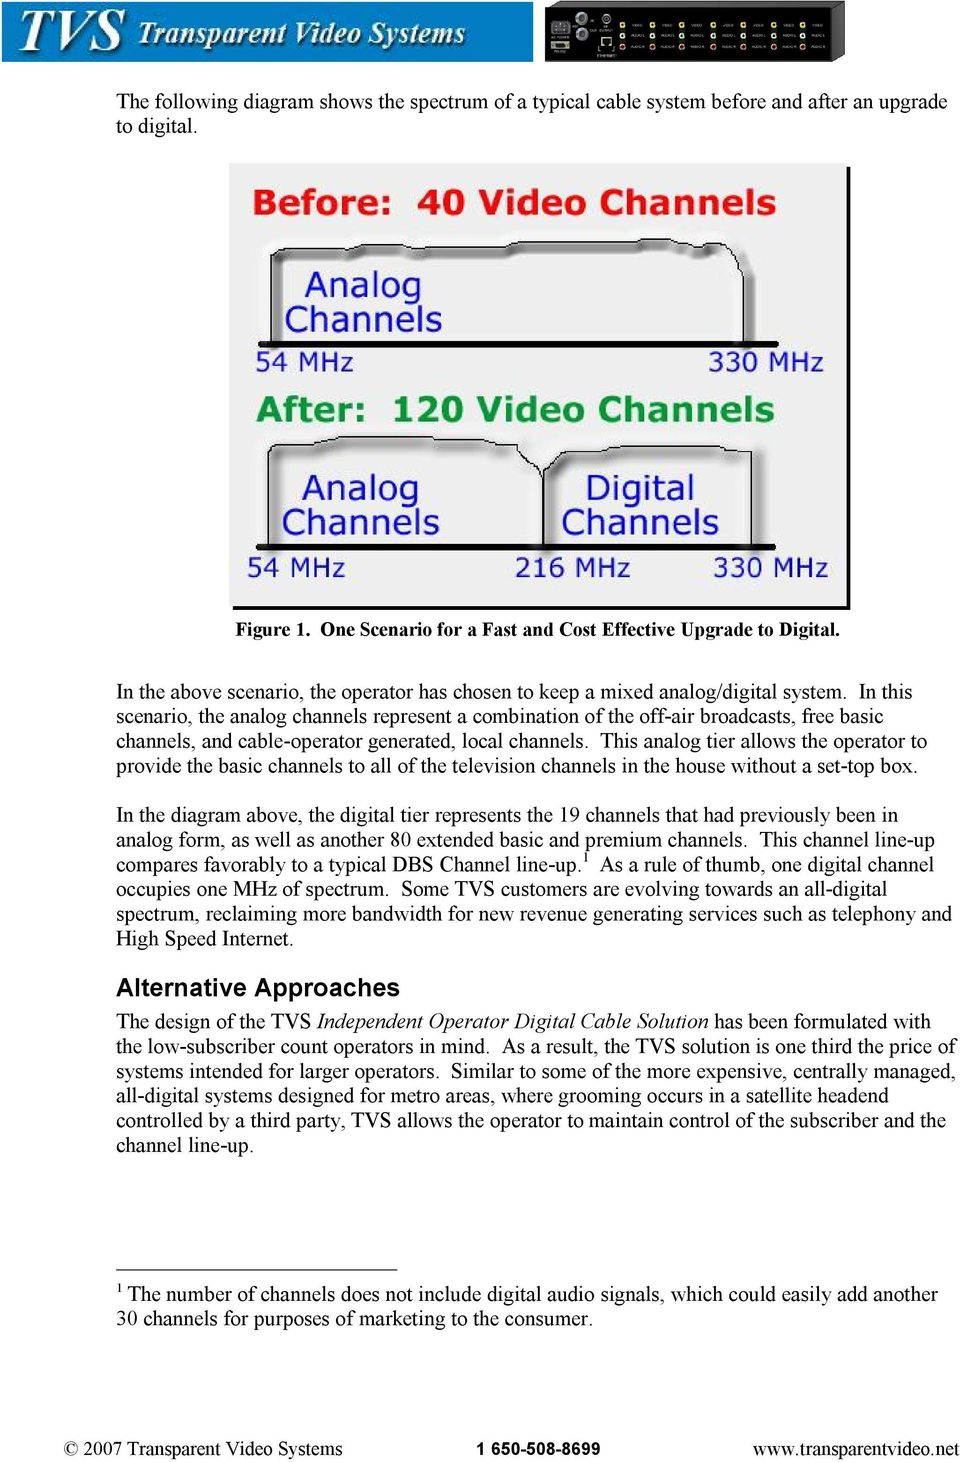 In this scenario, the analog channels represent a combination of the off air broadcasts, free basic channels, and cable operator generated, local channels.